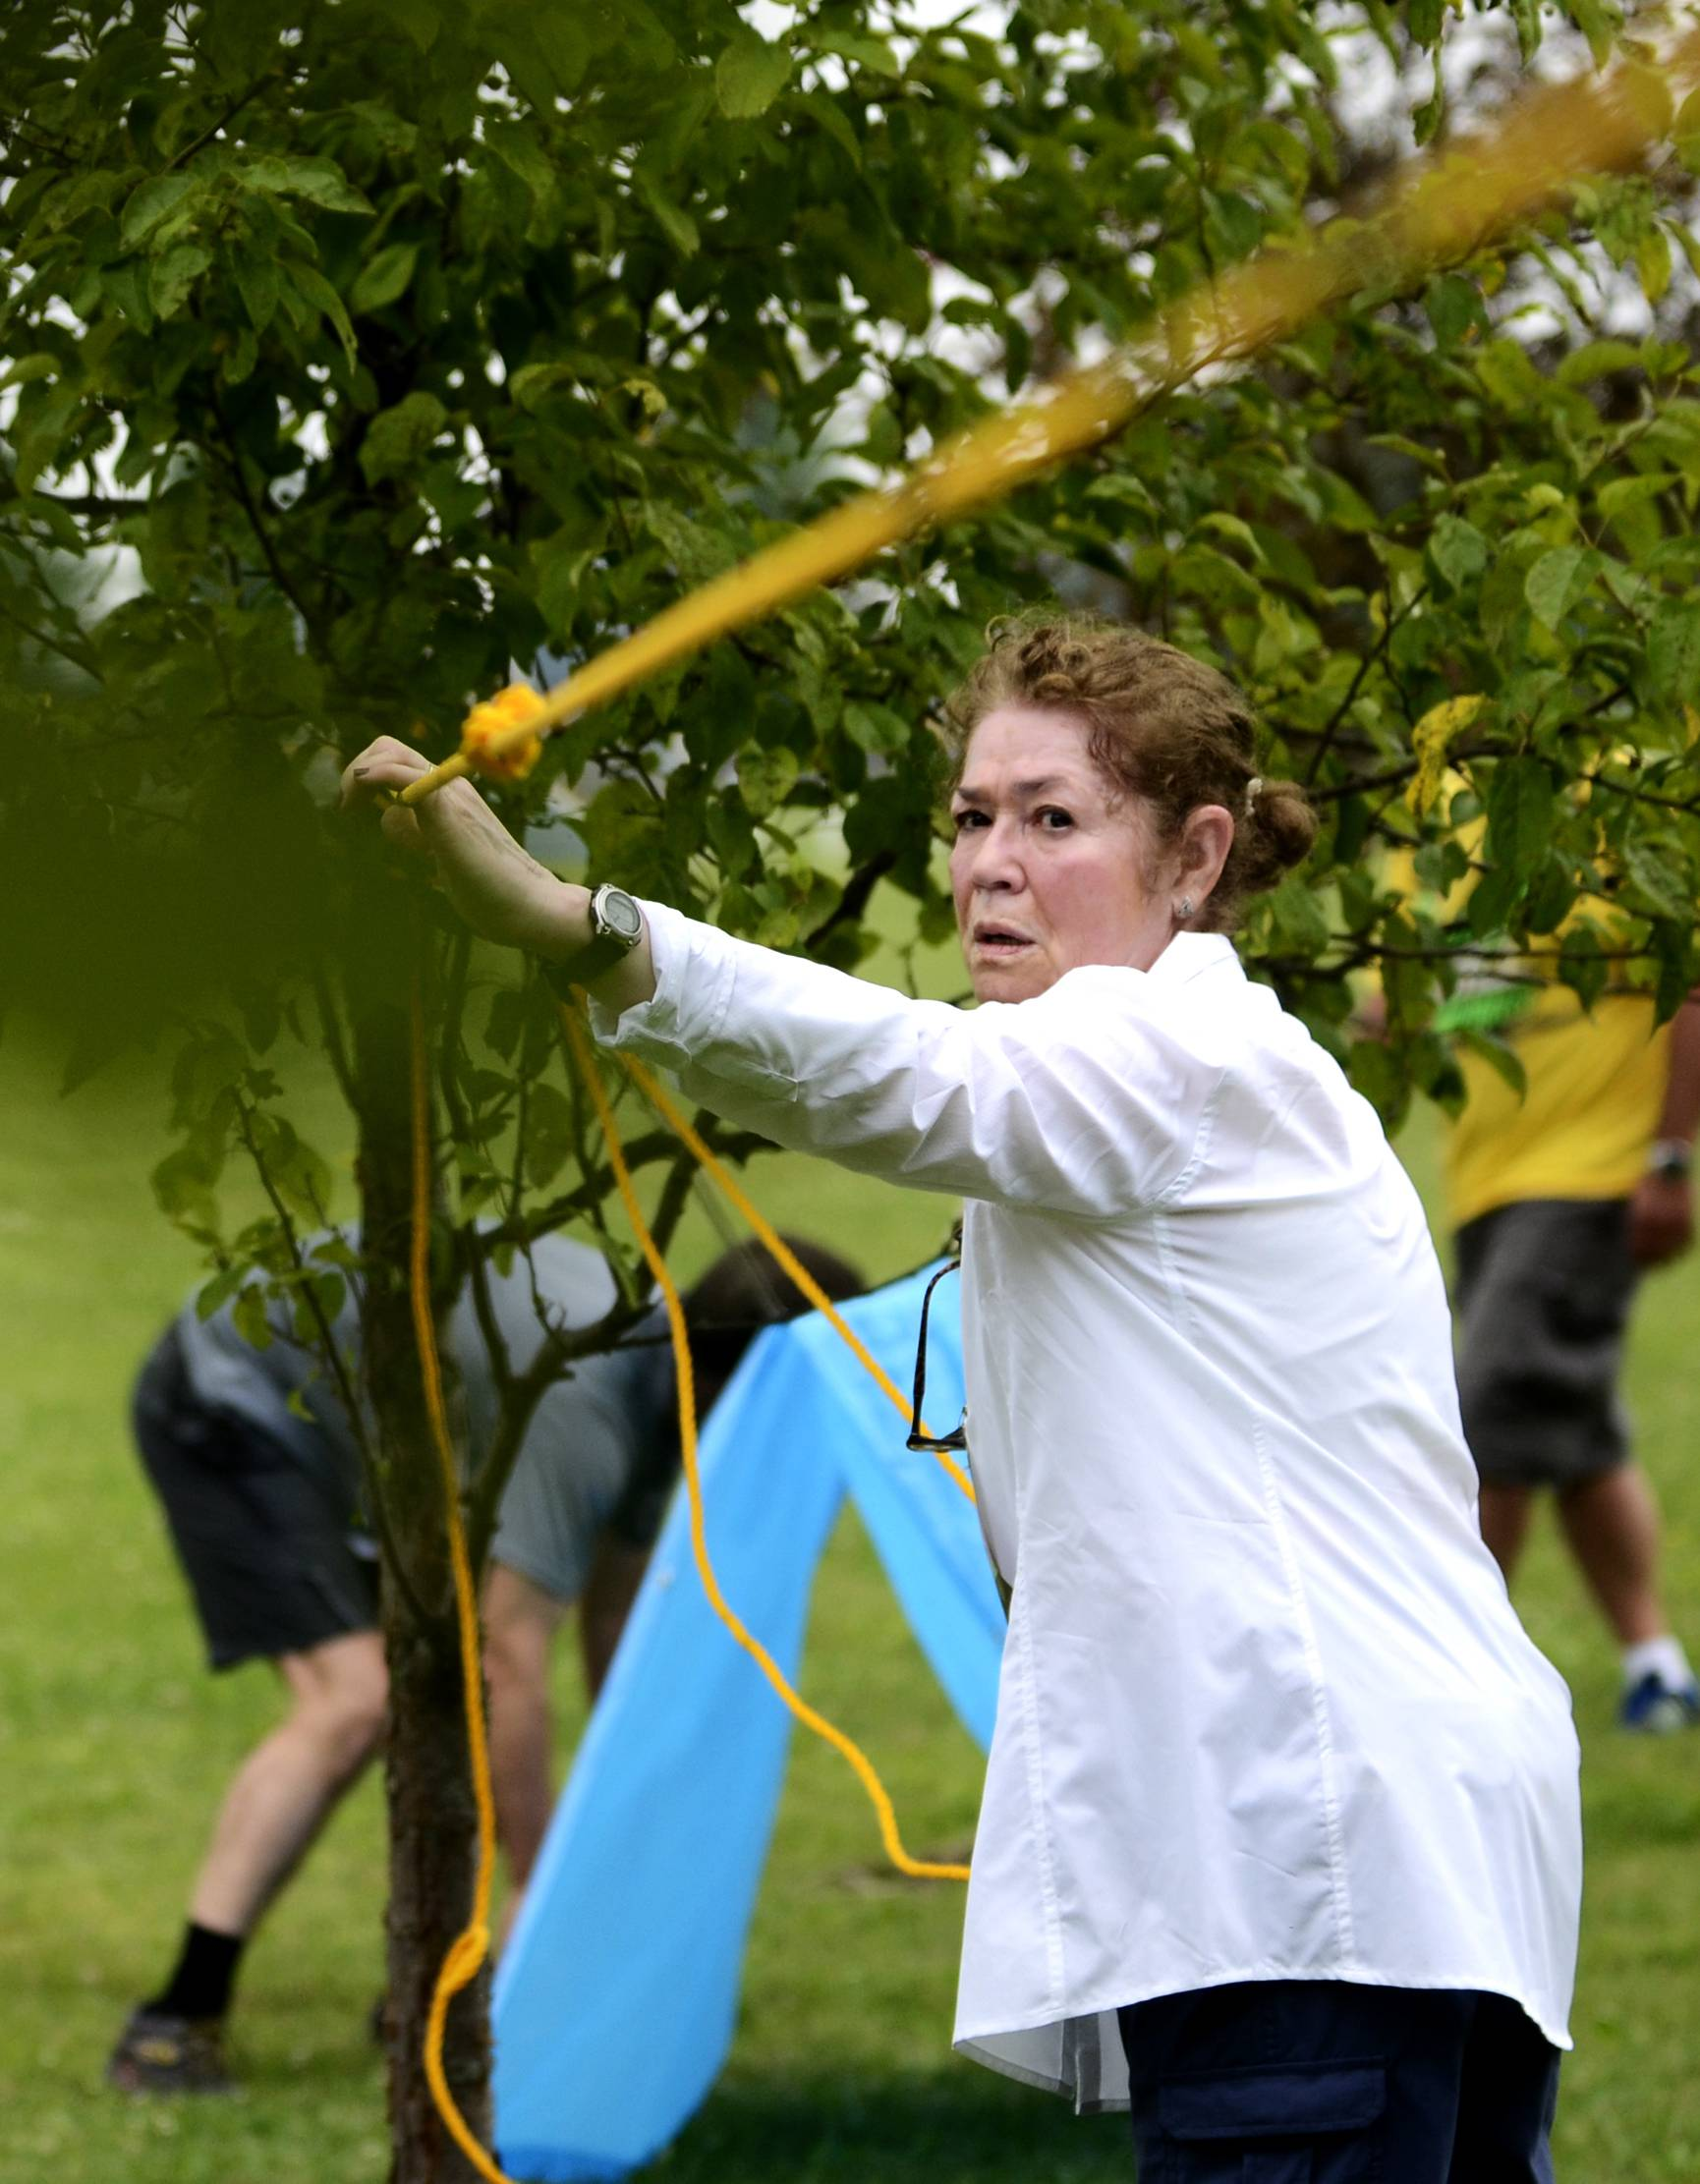 Gloria Kreider of Woodstock secures a rope to make a small shelter Saturday at the RUNdezvous Race in Crystal Lake's Lippold Park.